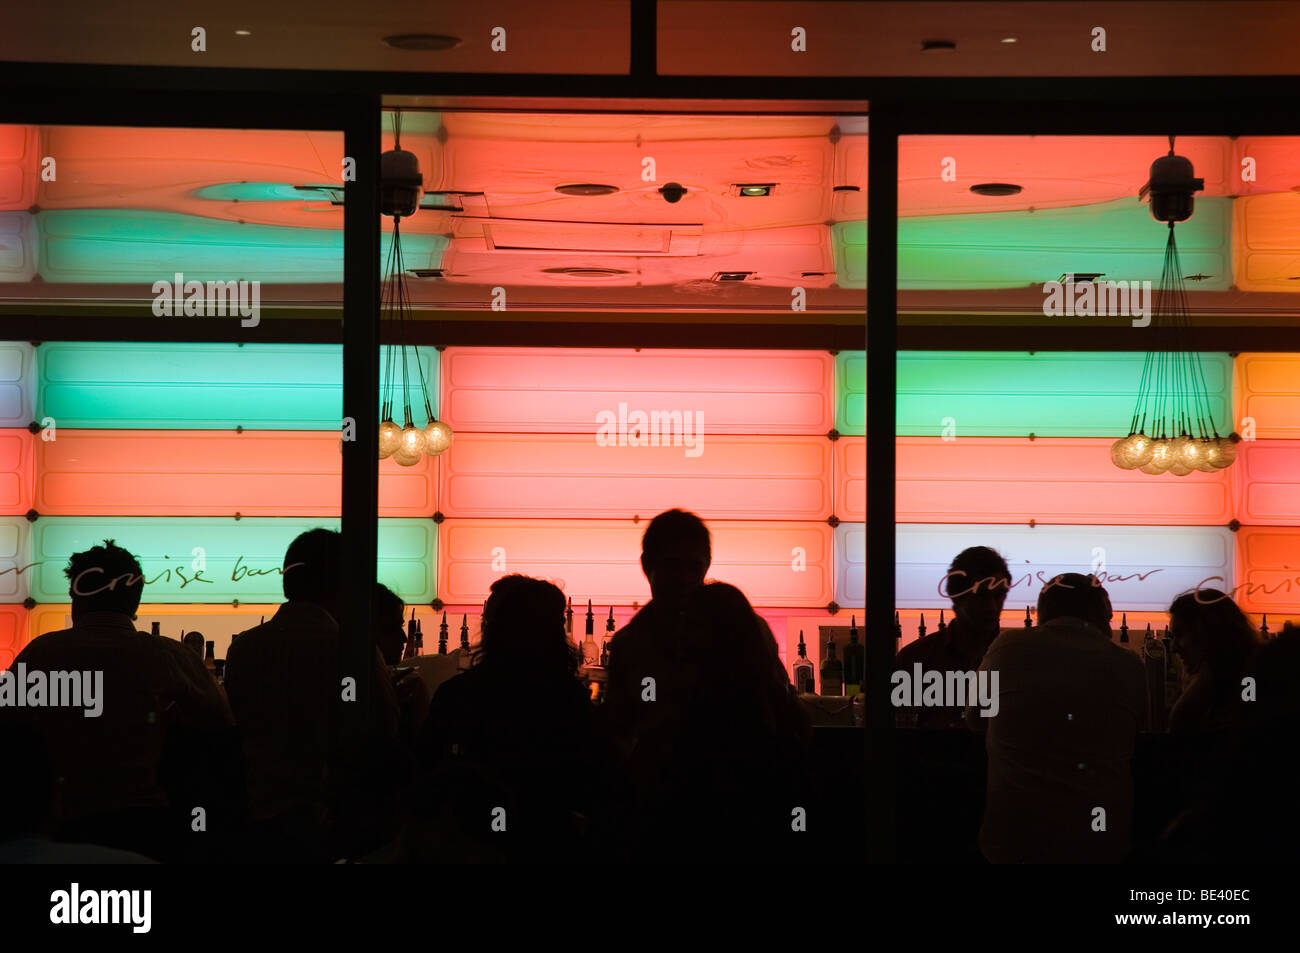 Nightlife at the Cruise Bar at West Circular Quay. The Rocks, Sydney, New South Wales, AUSTRALIA - Stock Image